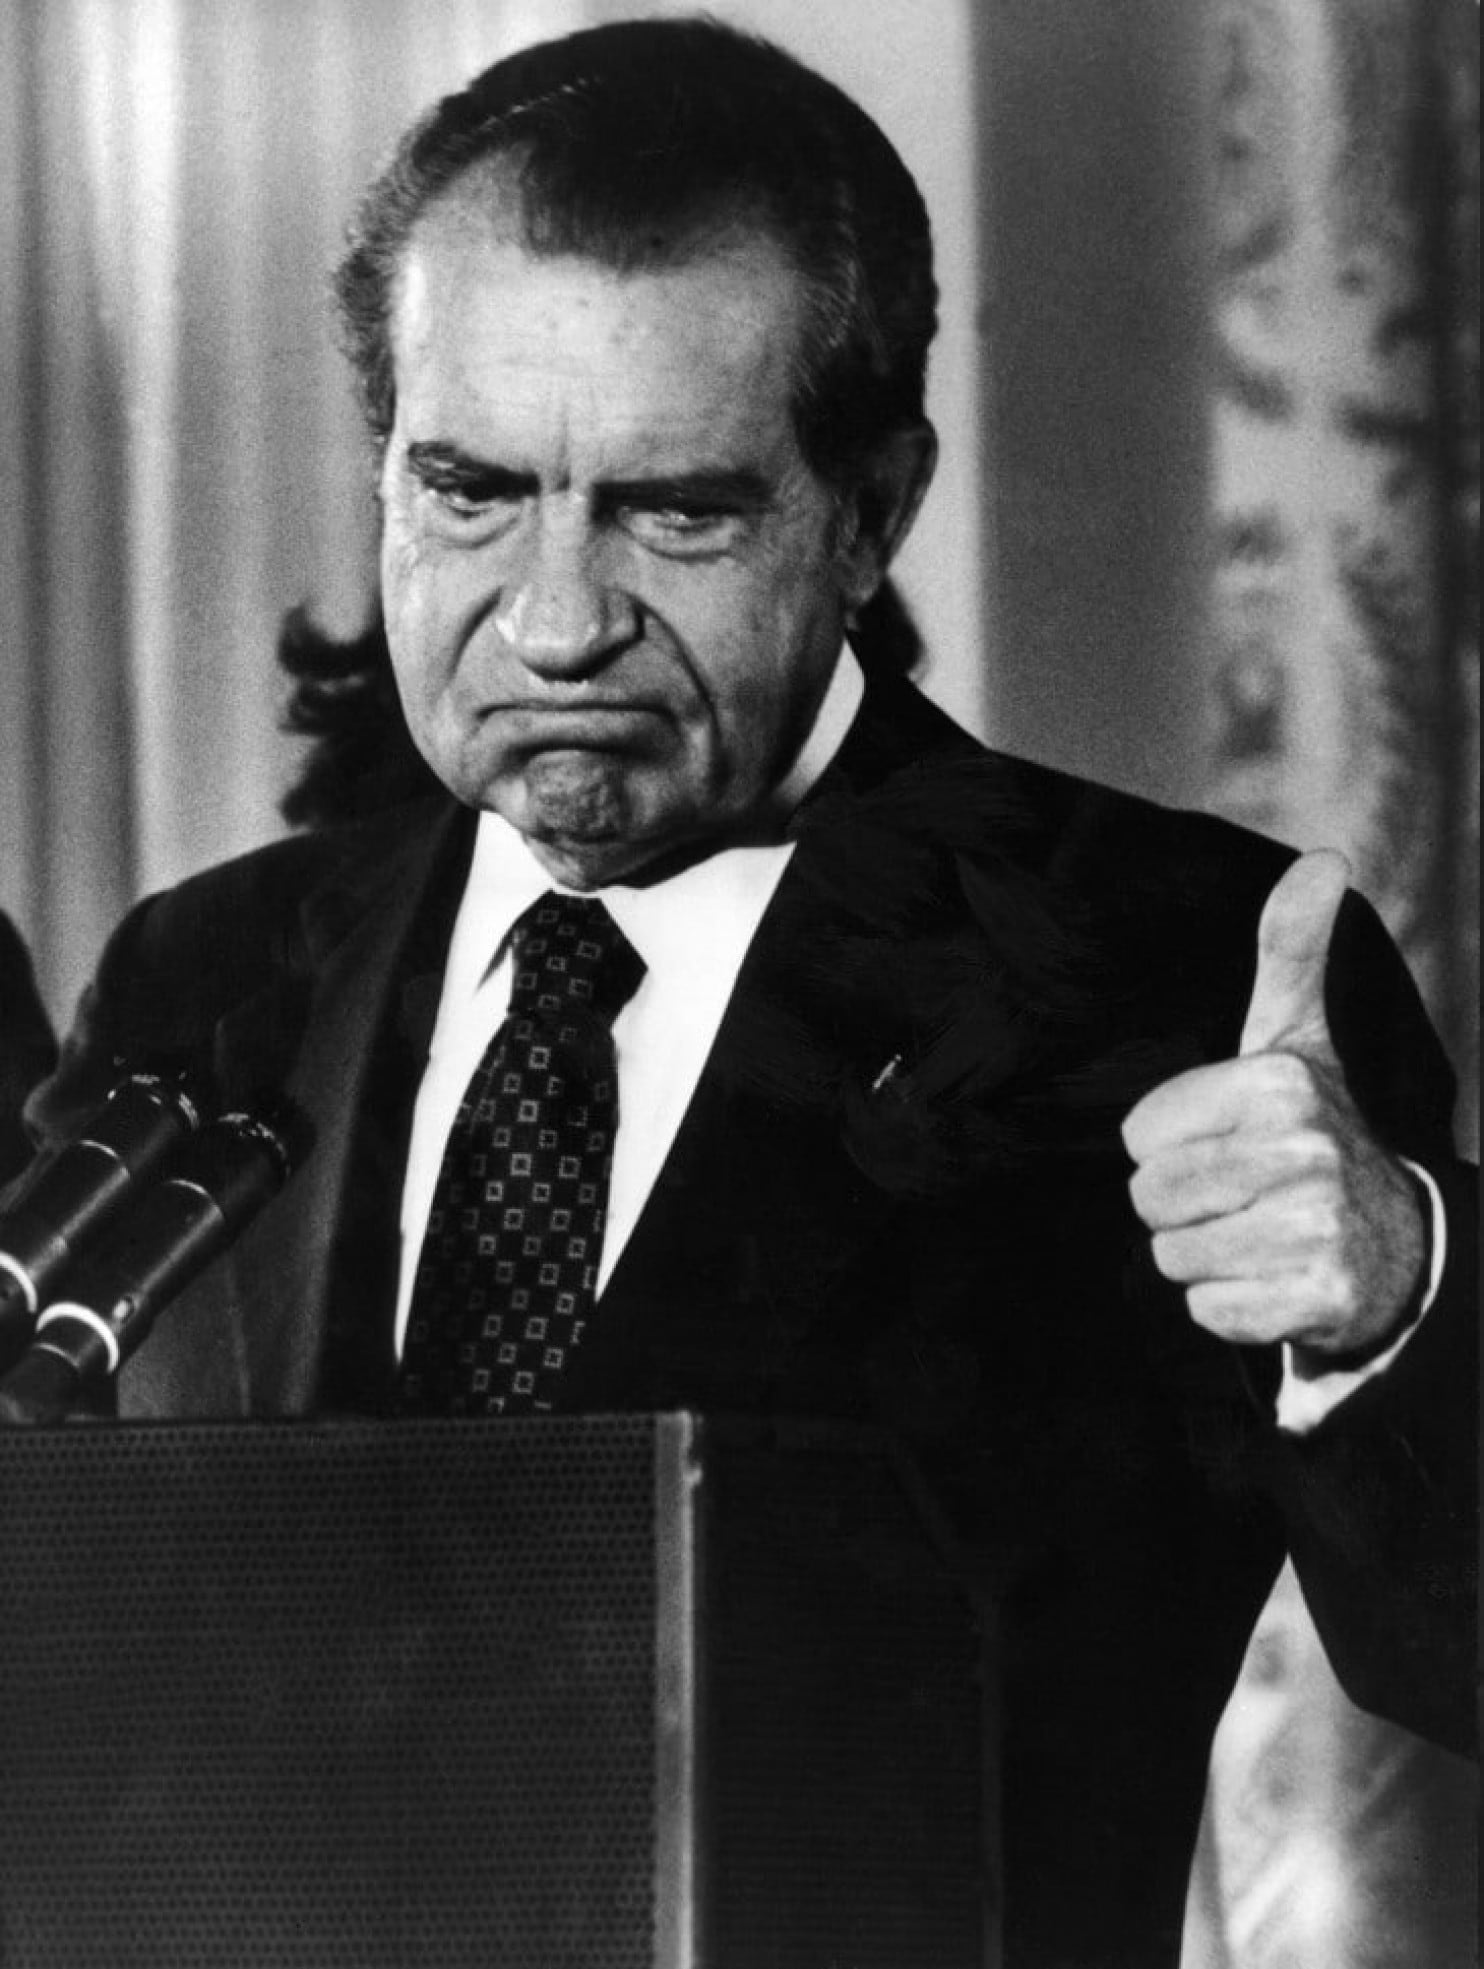 Richard Nixon in 1974